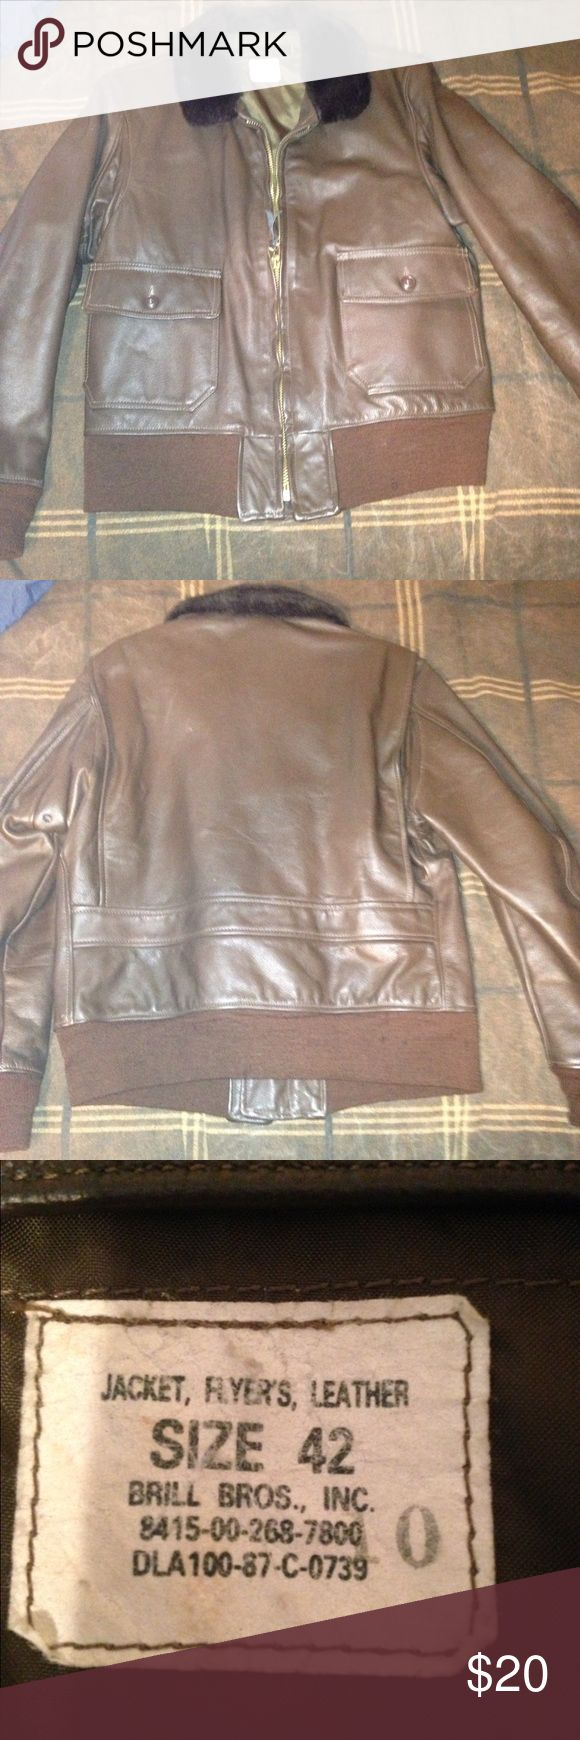 Leather flight jacket Flyers jacket, leather, does have snags and snag that made a hole, price reflects the defects. brill bros Jackets & Coats Bomber & Varsity